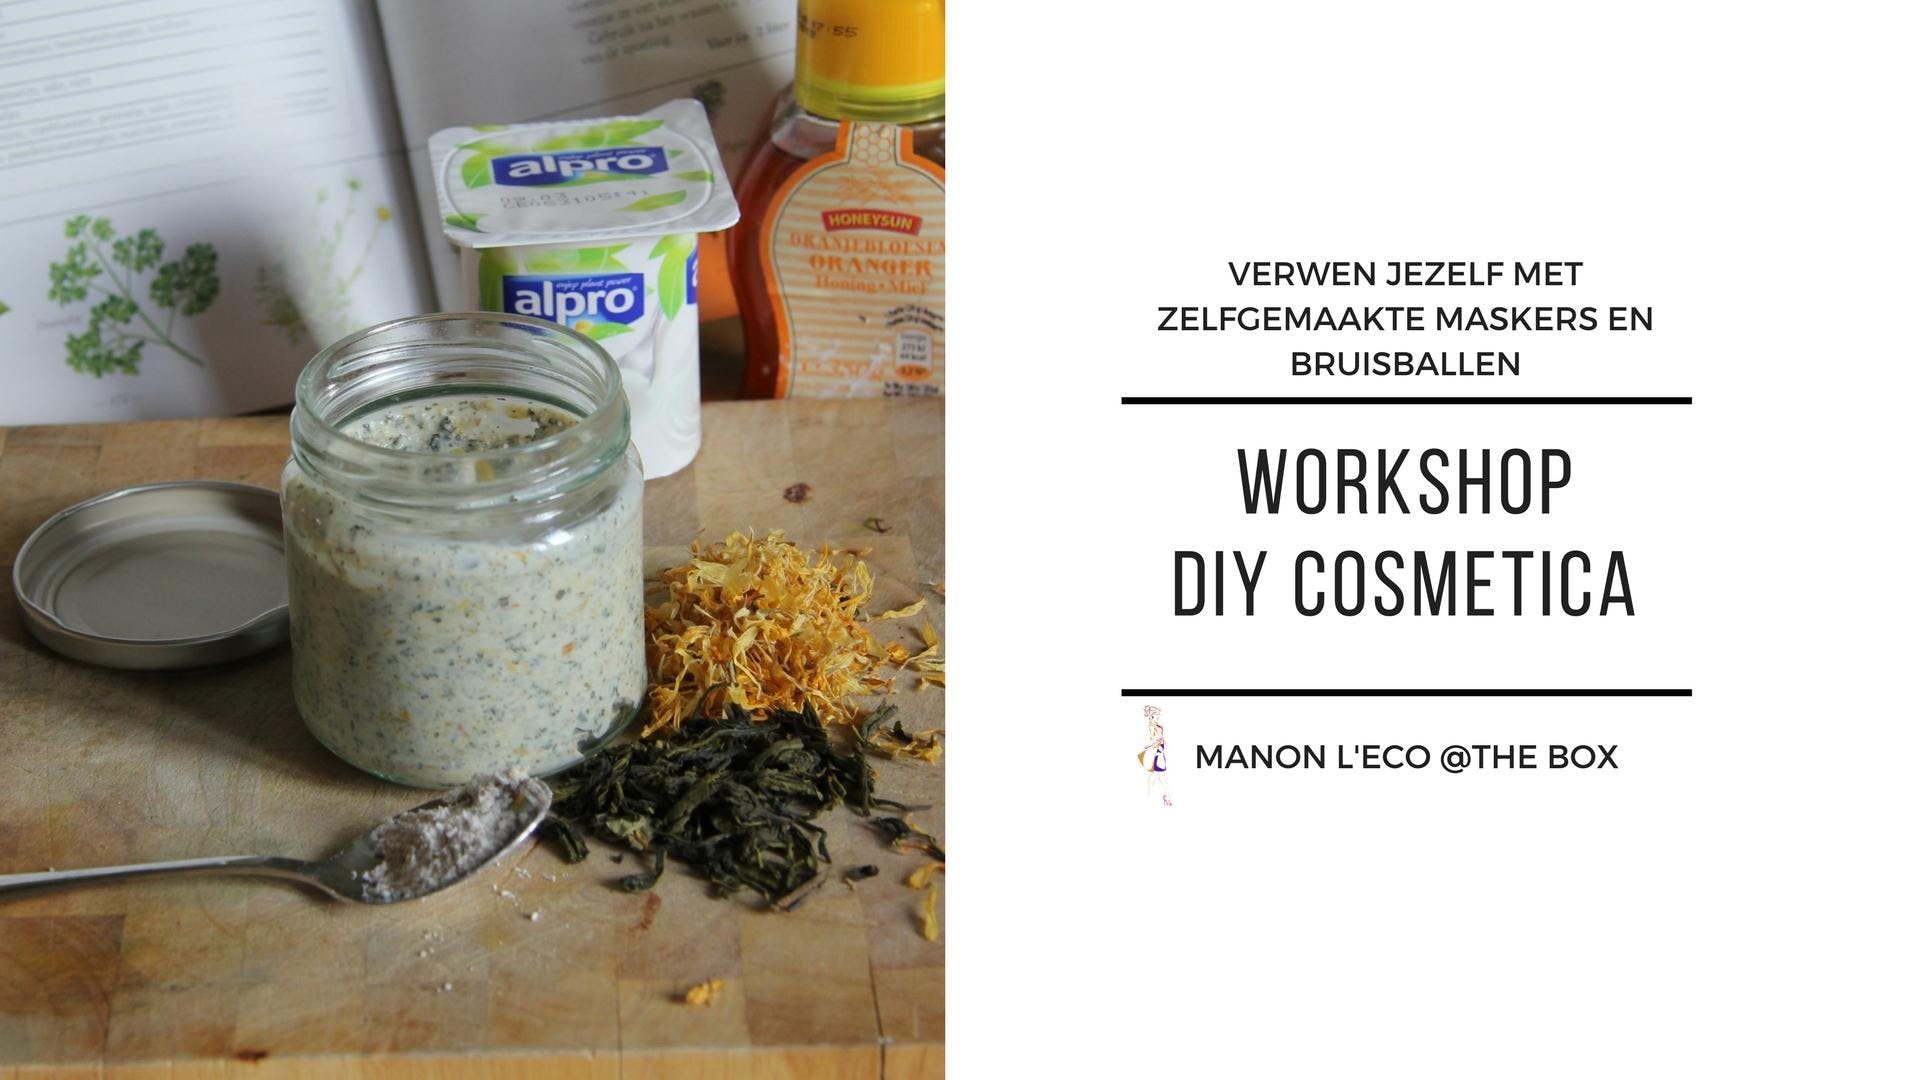 Workshop DIY cosmetica